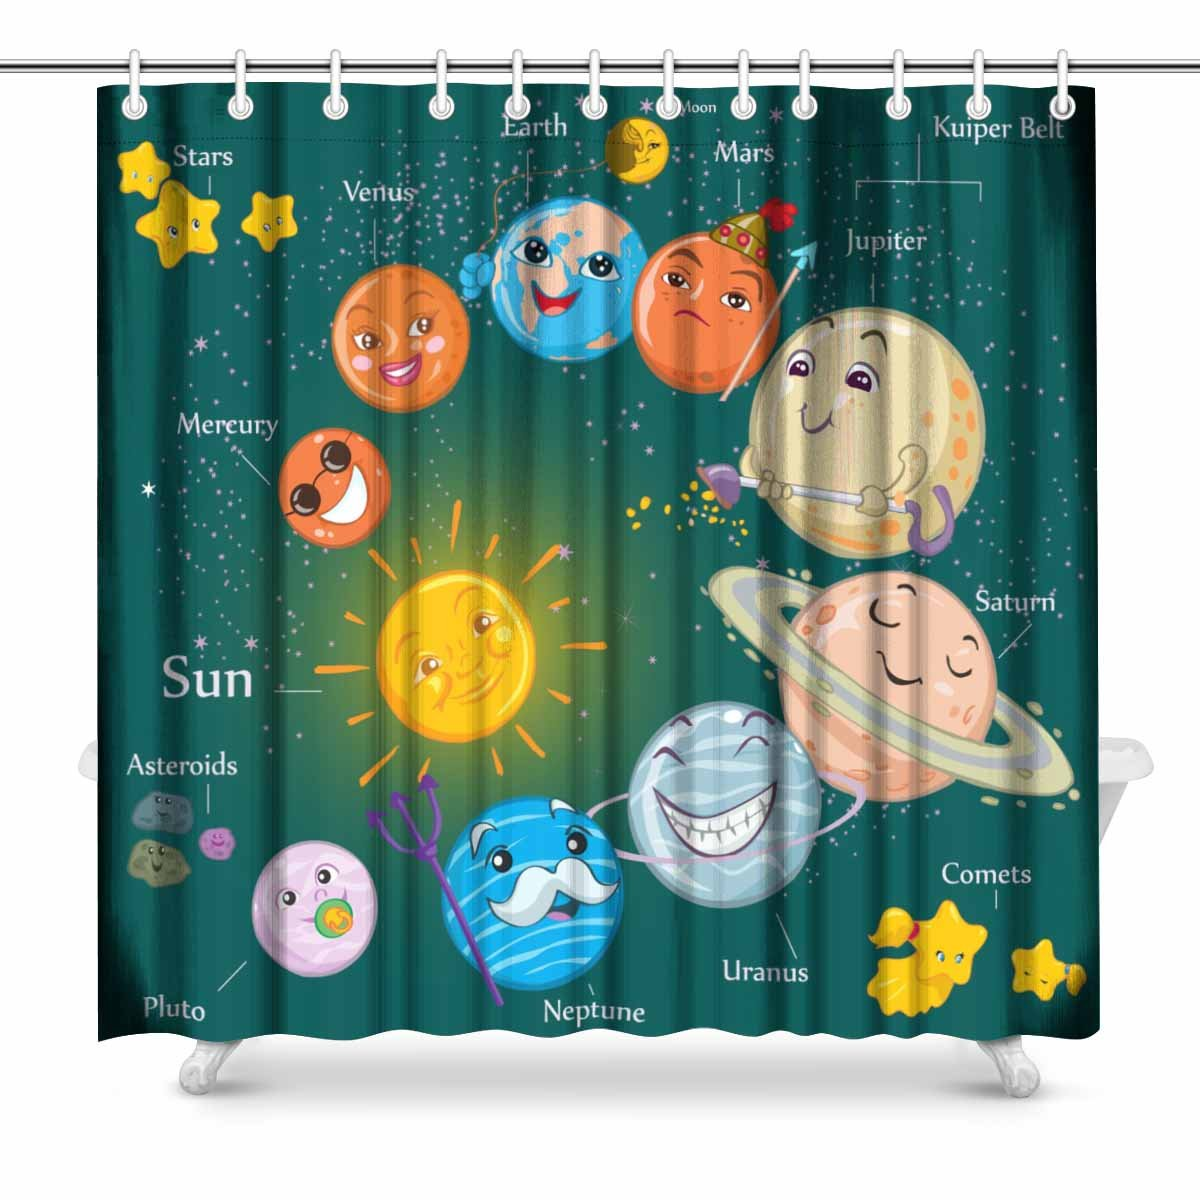 InterestPrint Solar System Bathroom Decor Shower Curtain Set with Hooks, 72 Inches Long